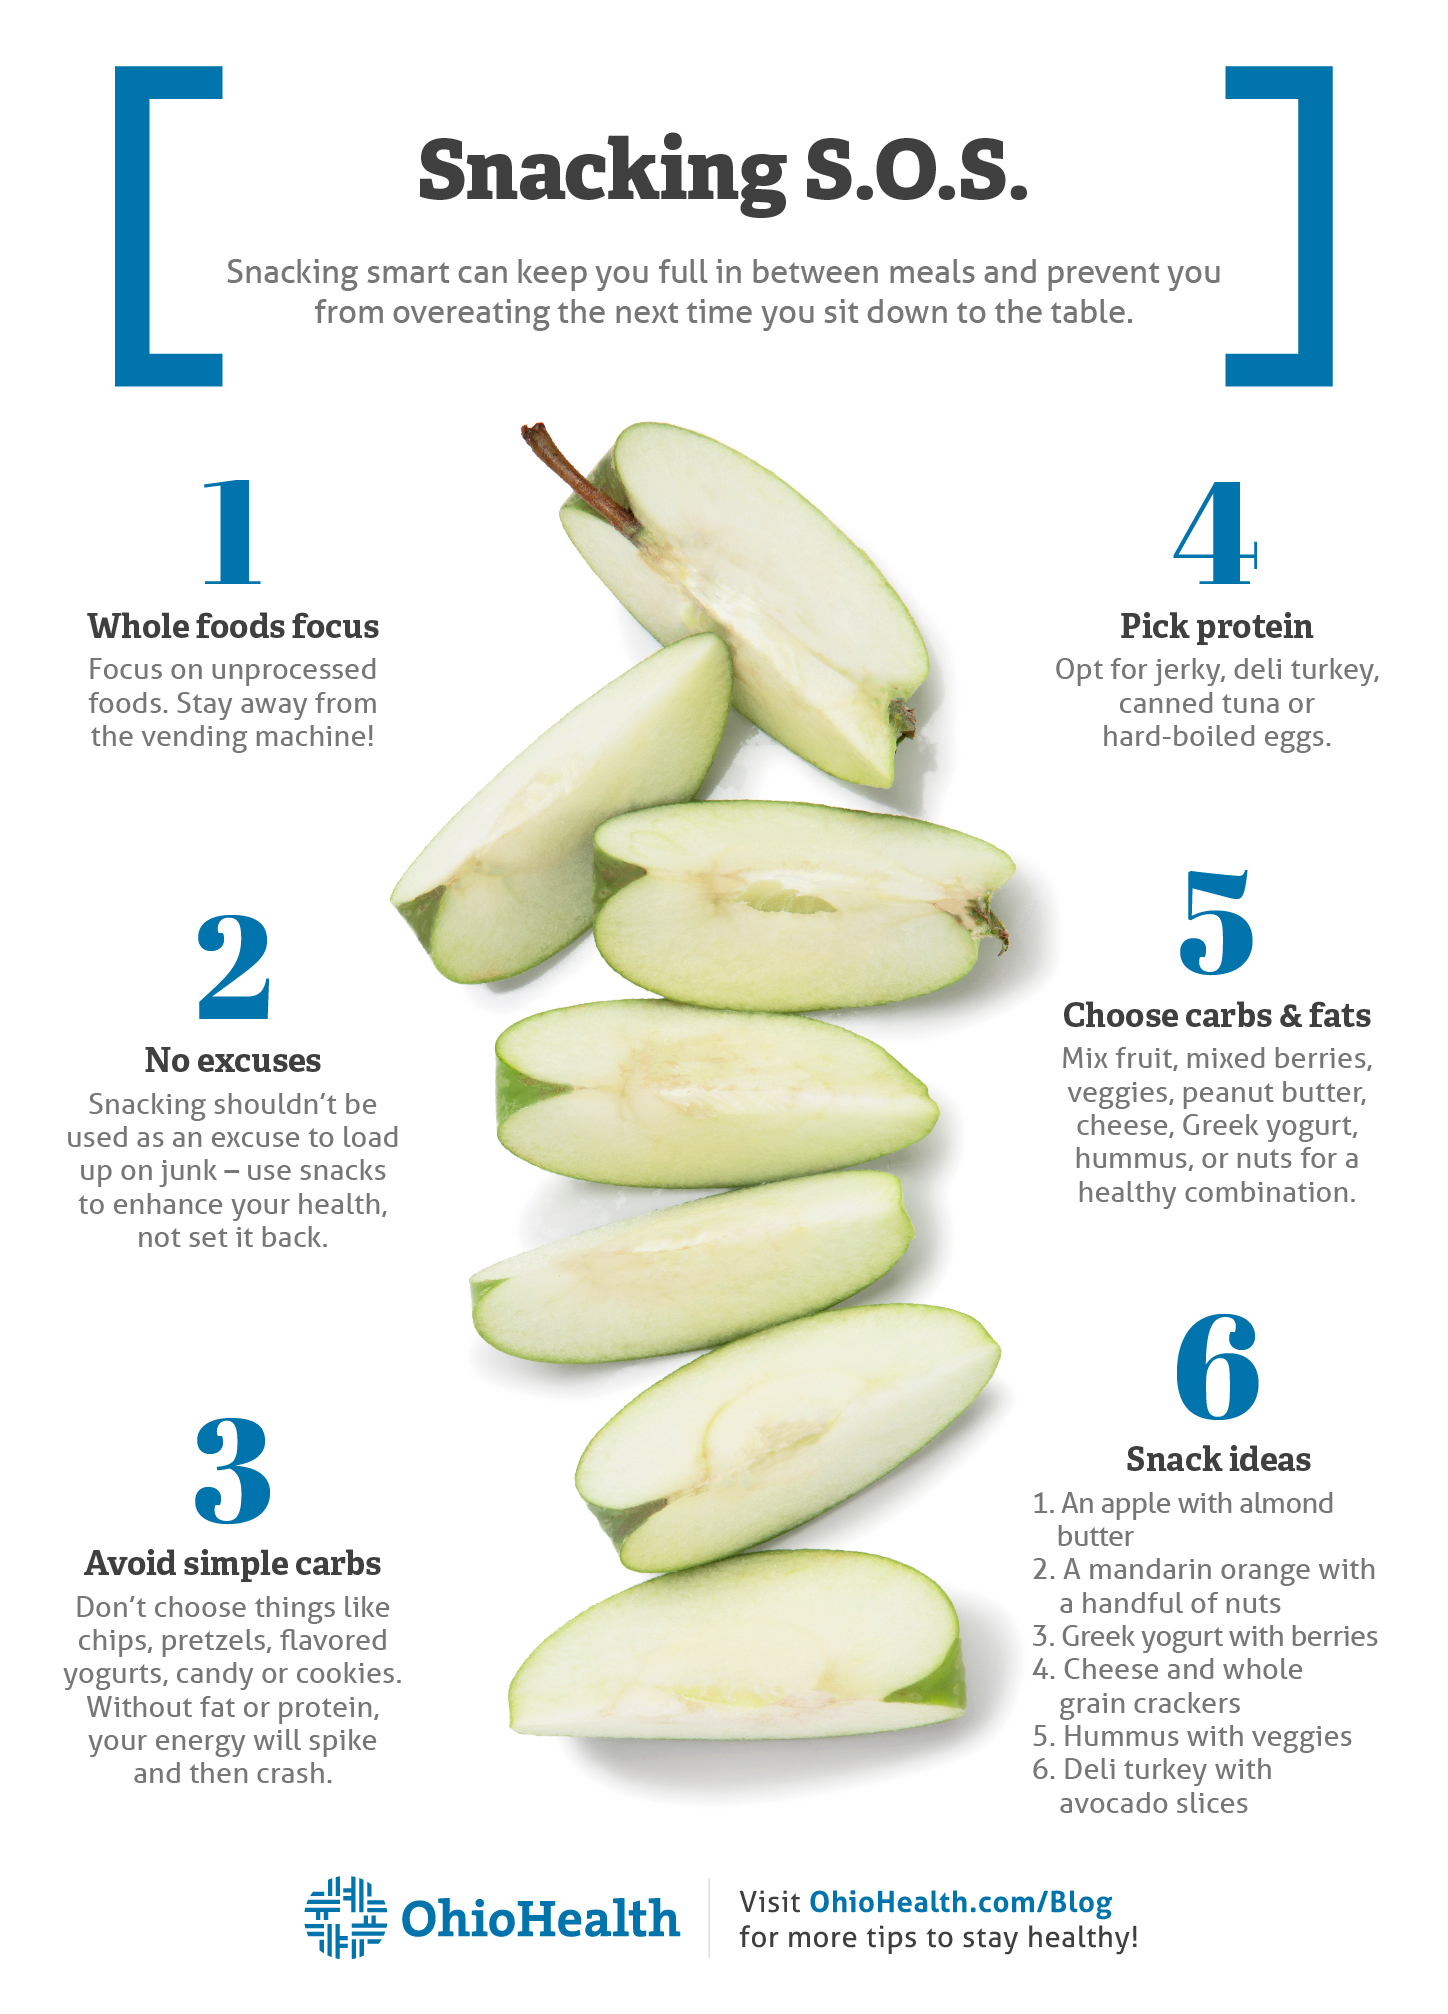 Infographic with six tips to help you snack smarter between meals